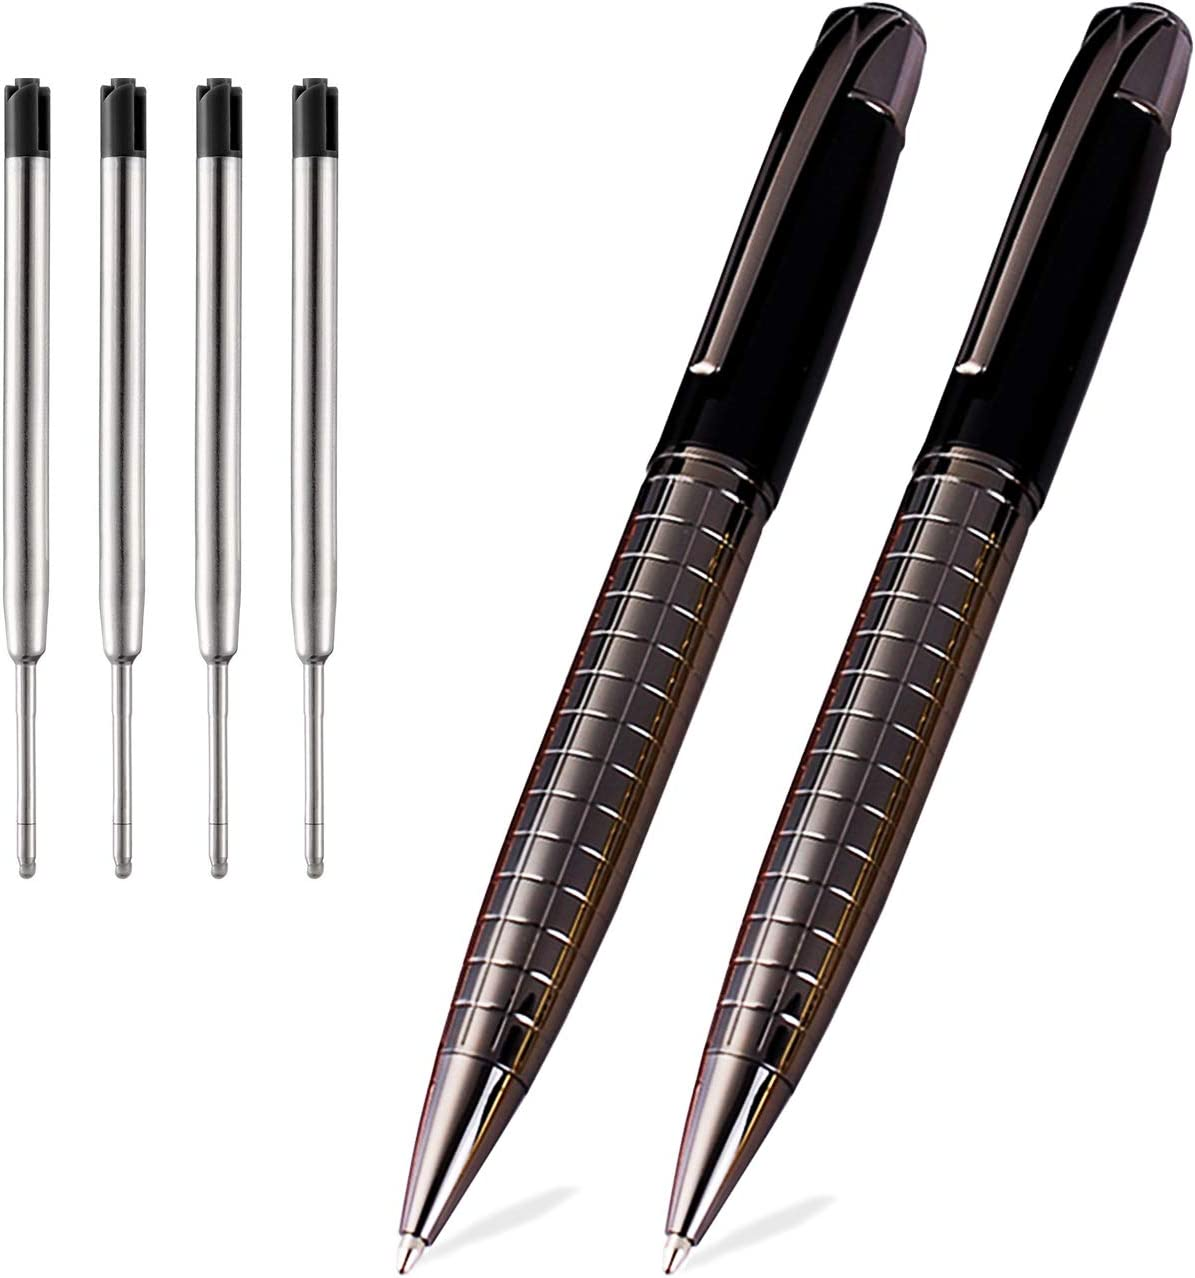 Obacle Ballpoint Pens Black Pens Medium Ball Point 1.0mm Smooth Writing Grip Metal Retractable Executive Business Office Fancy Nice Gift Pen for Men Women (Gun Black, 2 Pack 4 Refills)